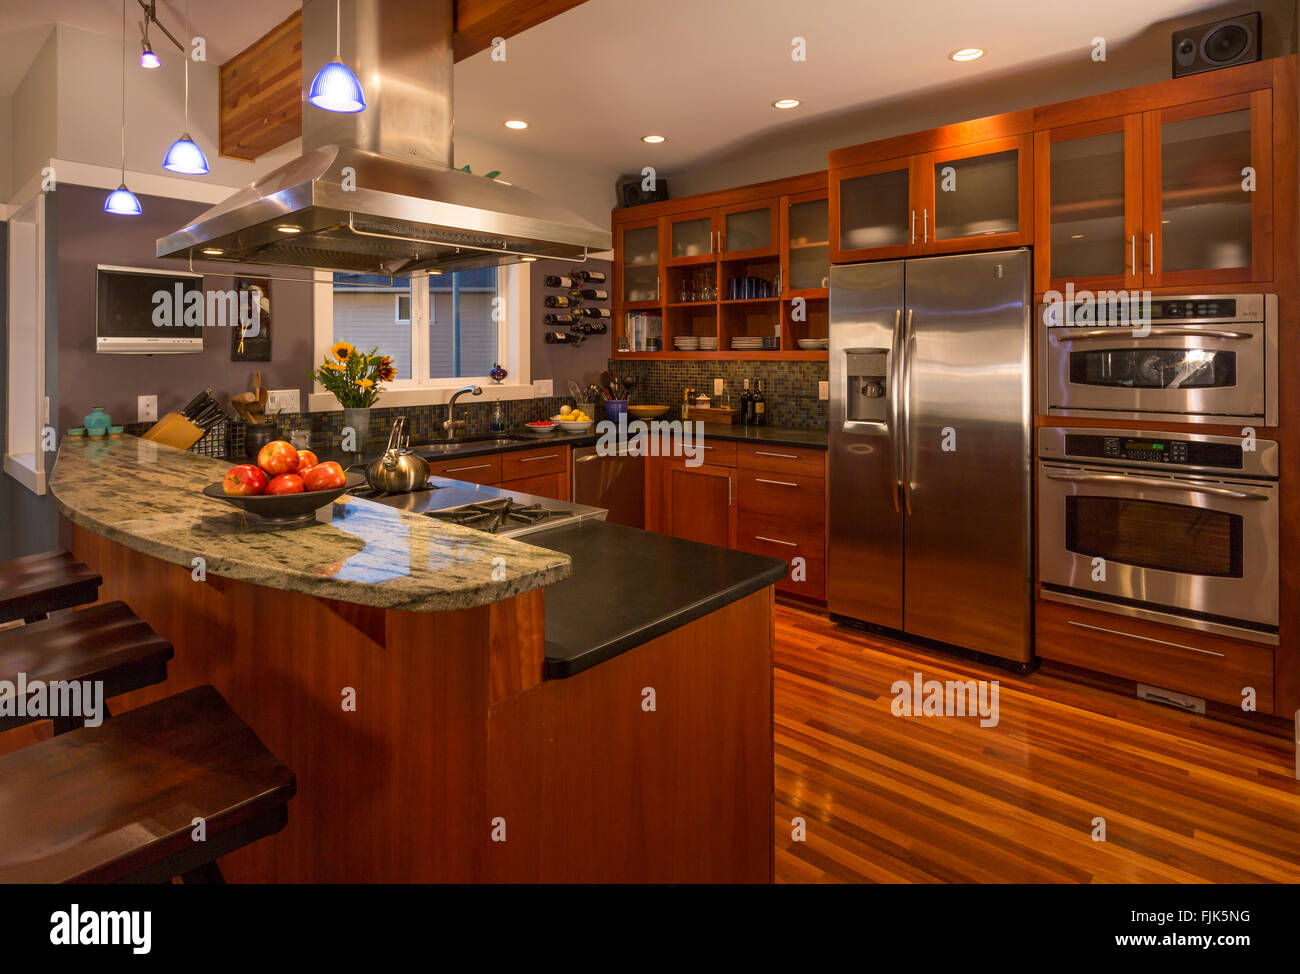 Contemporary upscale home kitchen interior with wood cabinets & floors, granite countertops, stainless steel - Stock Image